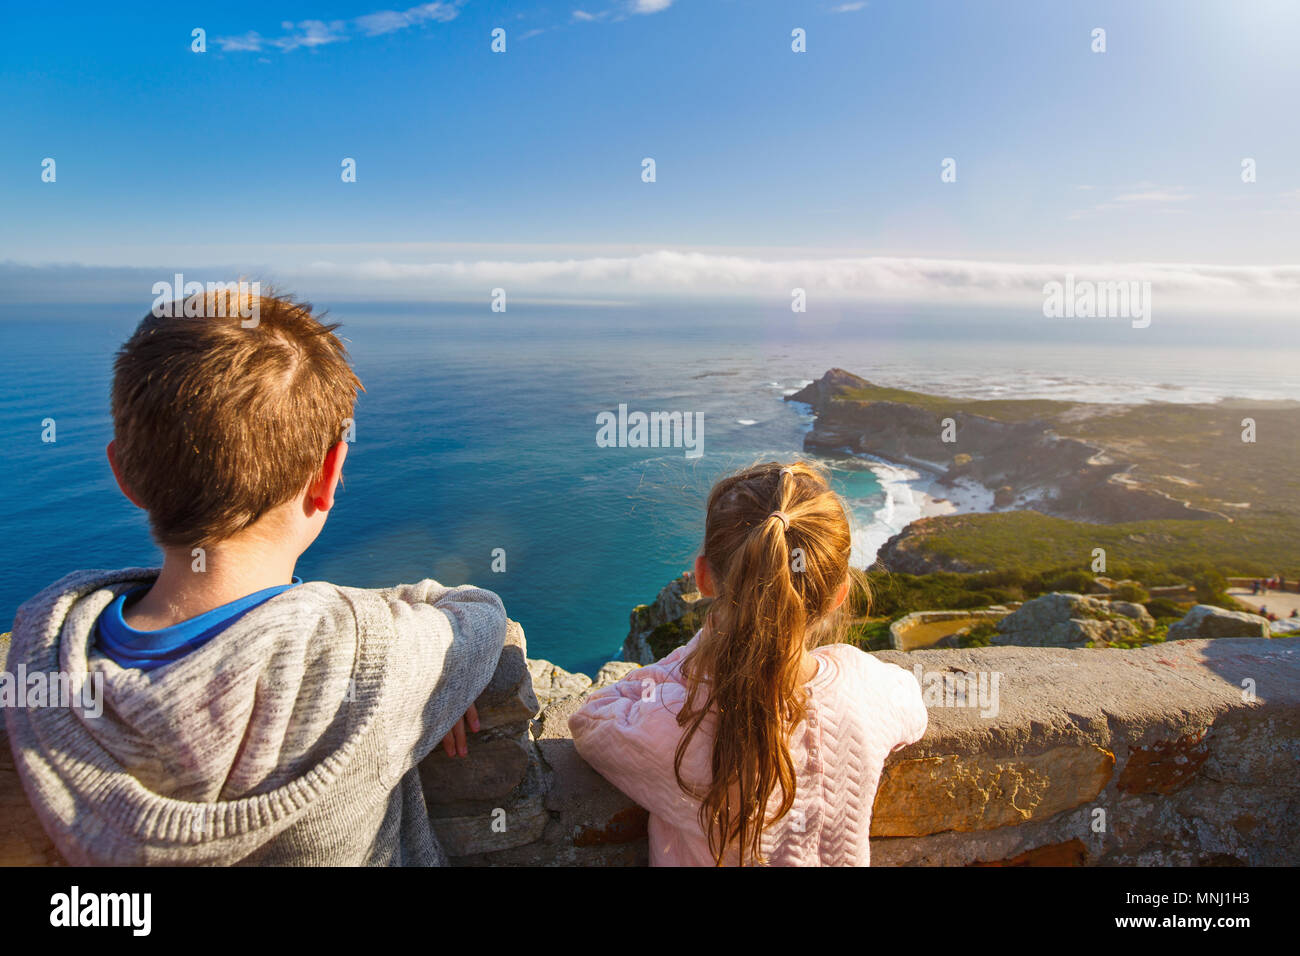 Two kids enjoying breathtaking views of Cape Town from top of Table mountain - Stock Image